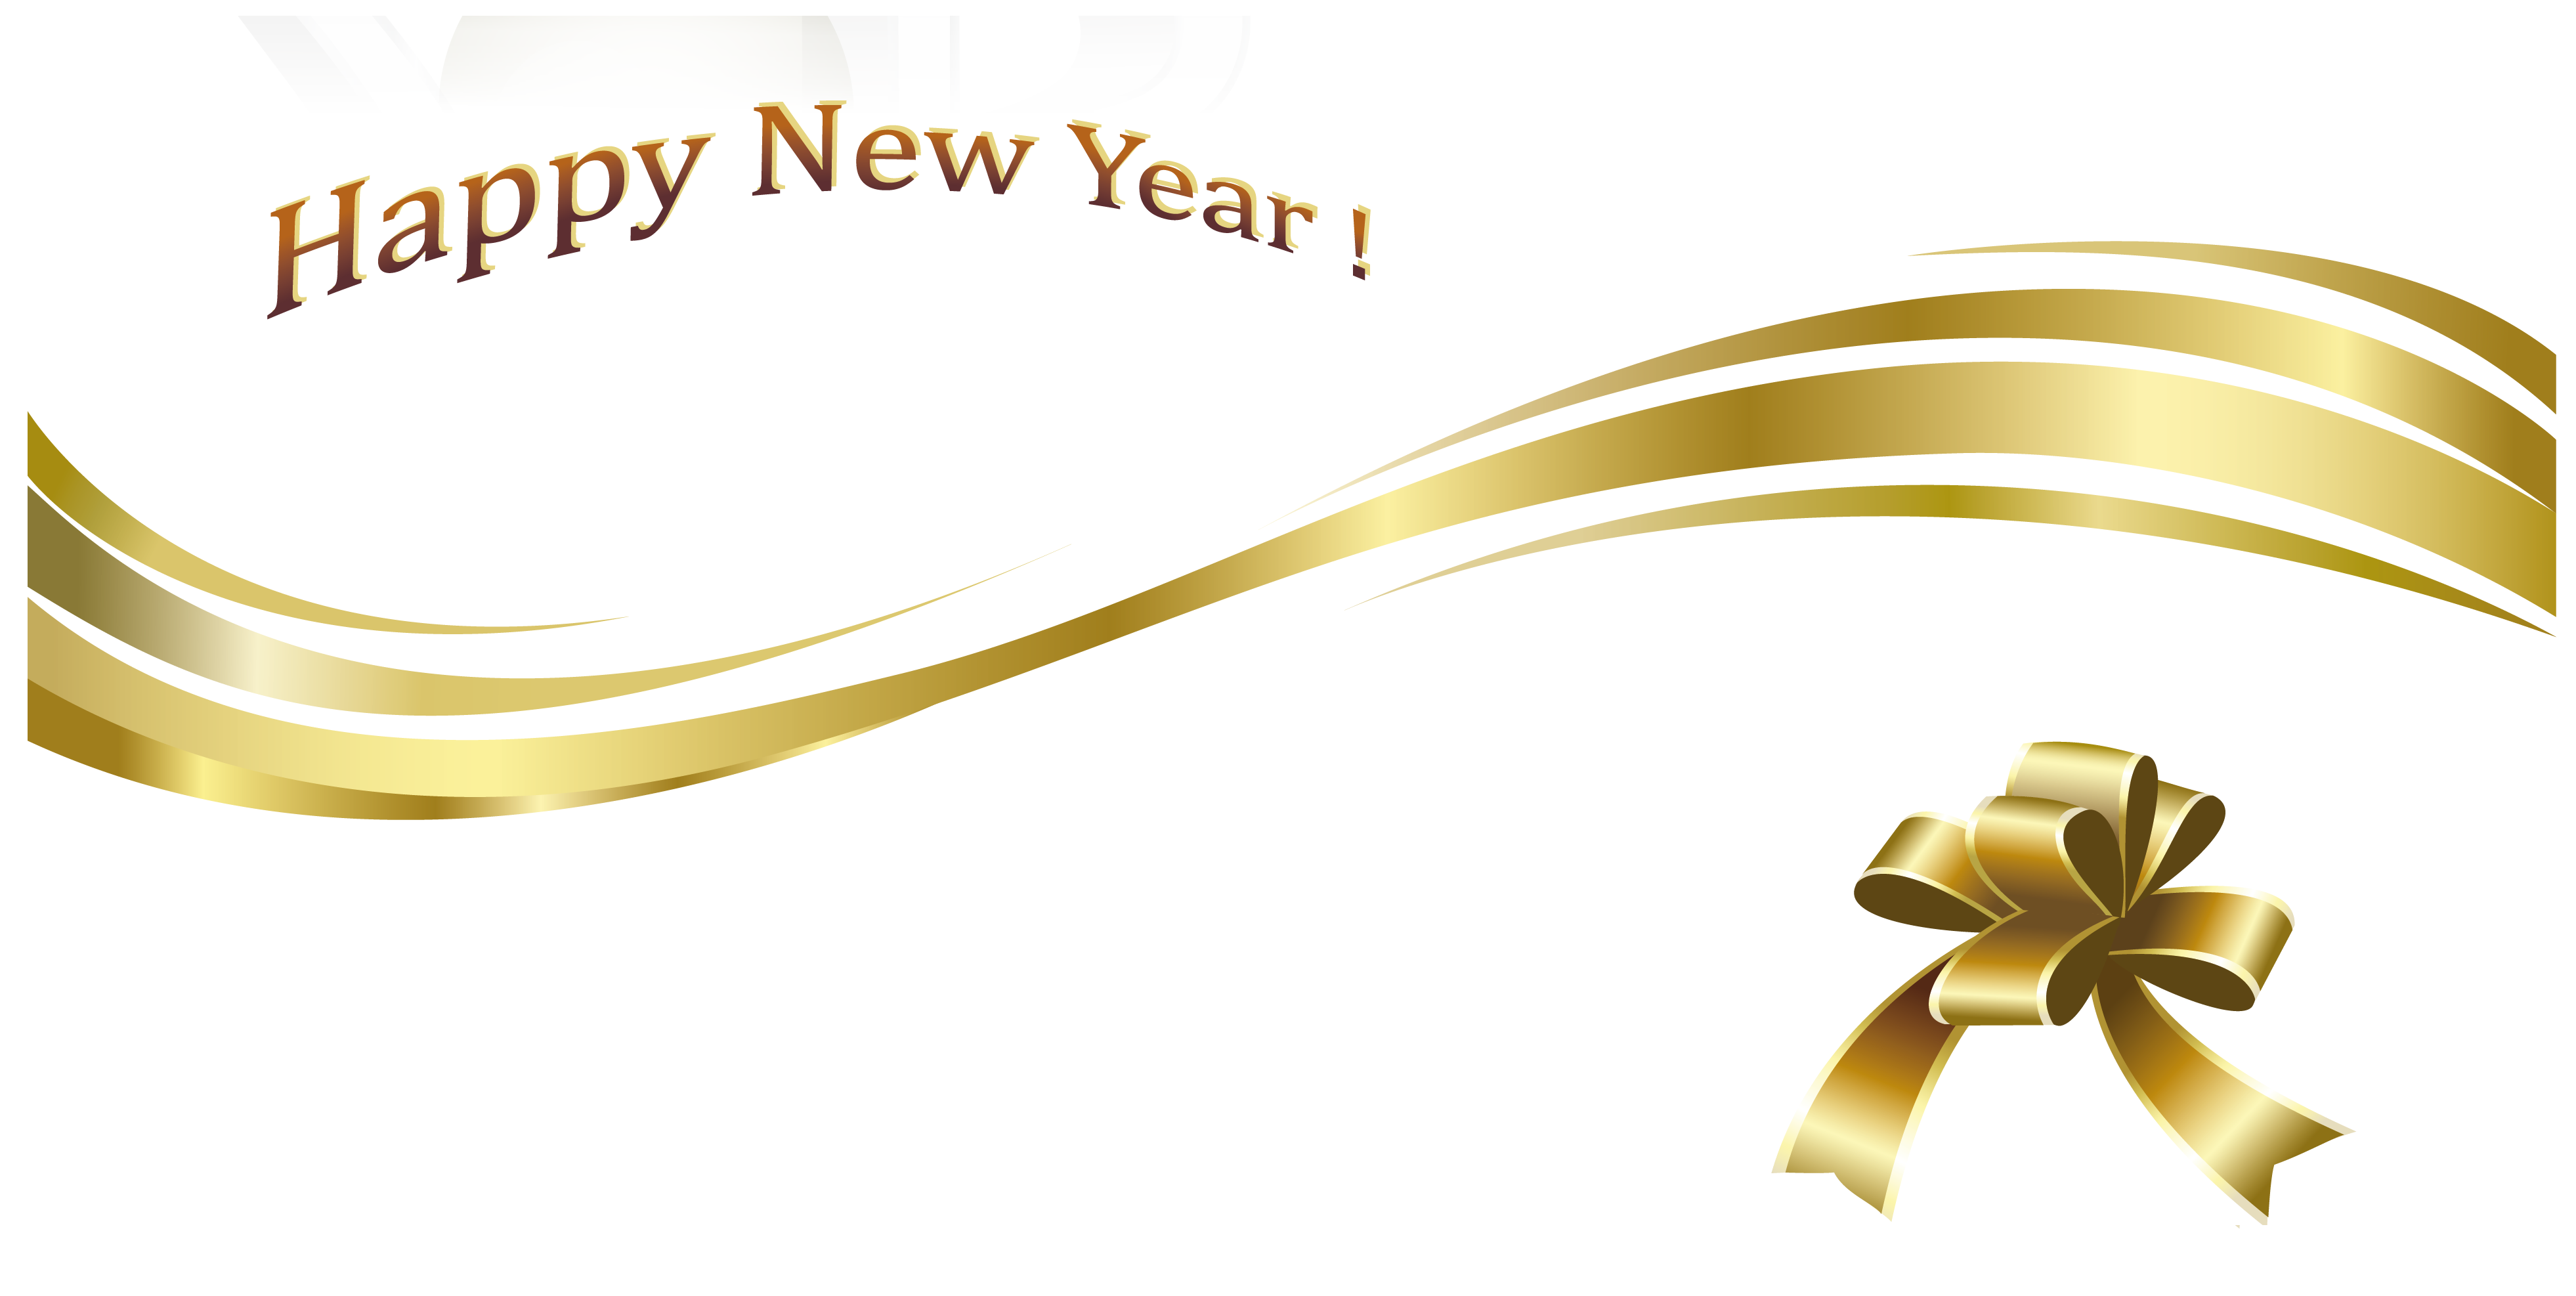 Happy New Year Gold Text And Decoration Gallery Yopriceville High Quality Images And Transparent Png Free Free Clip Art Happy Holidays Pictures Gold Text